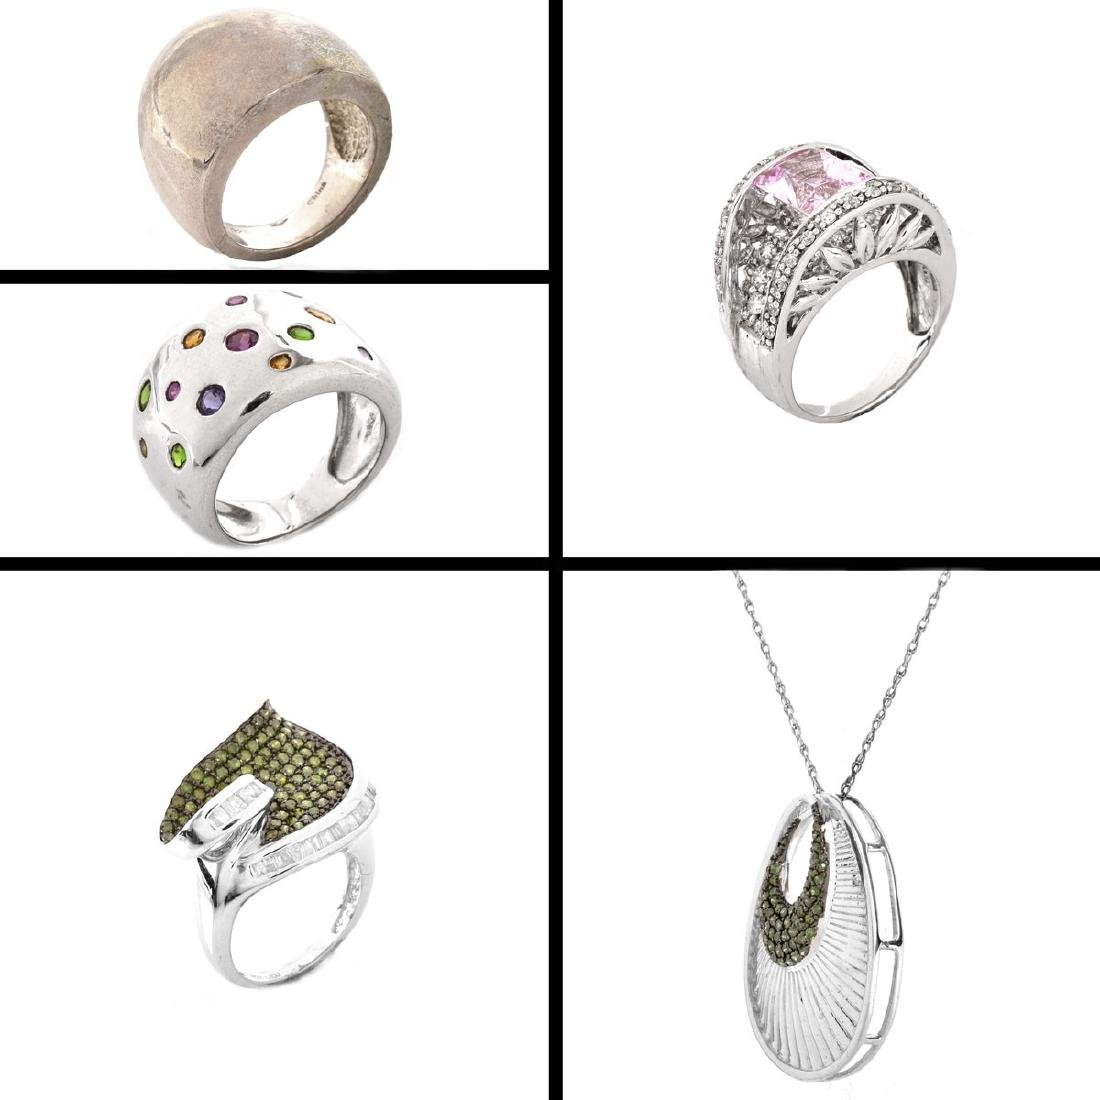 5 Pieces Sterling Silver Fashion Jewelry - 2